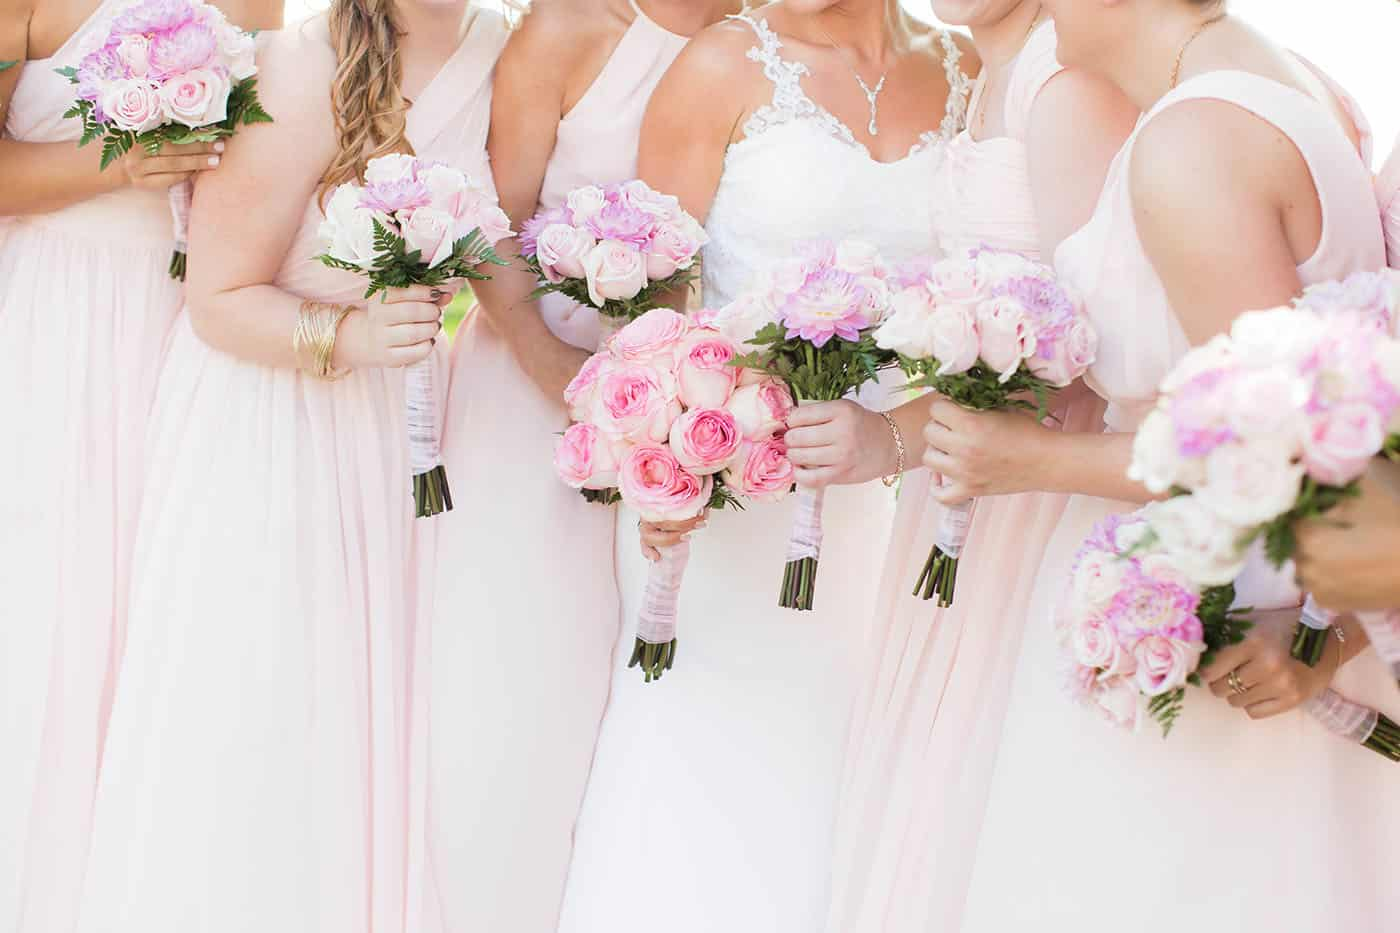 bridesmaids in pink dresses holding pink and purpose rose bouquets by customer service whiz cinnamon wolfe